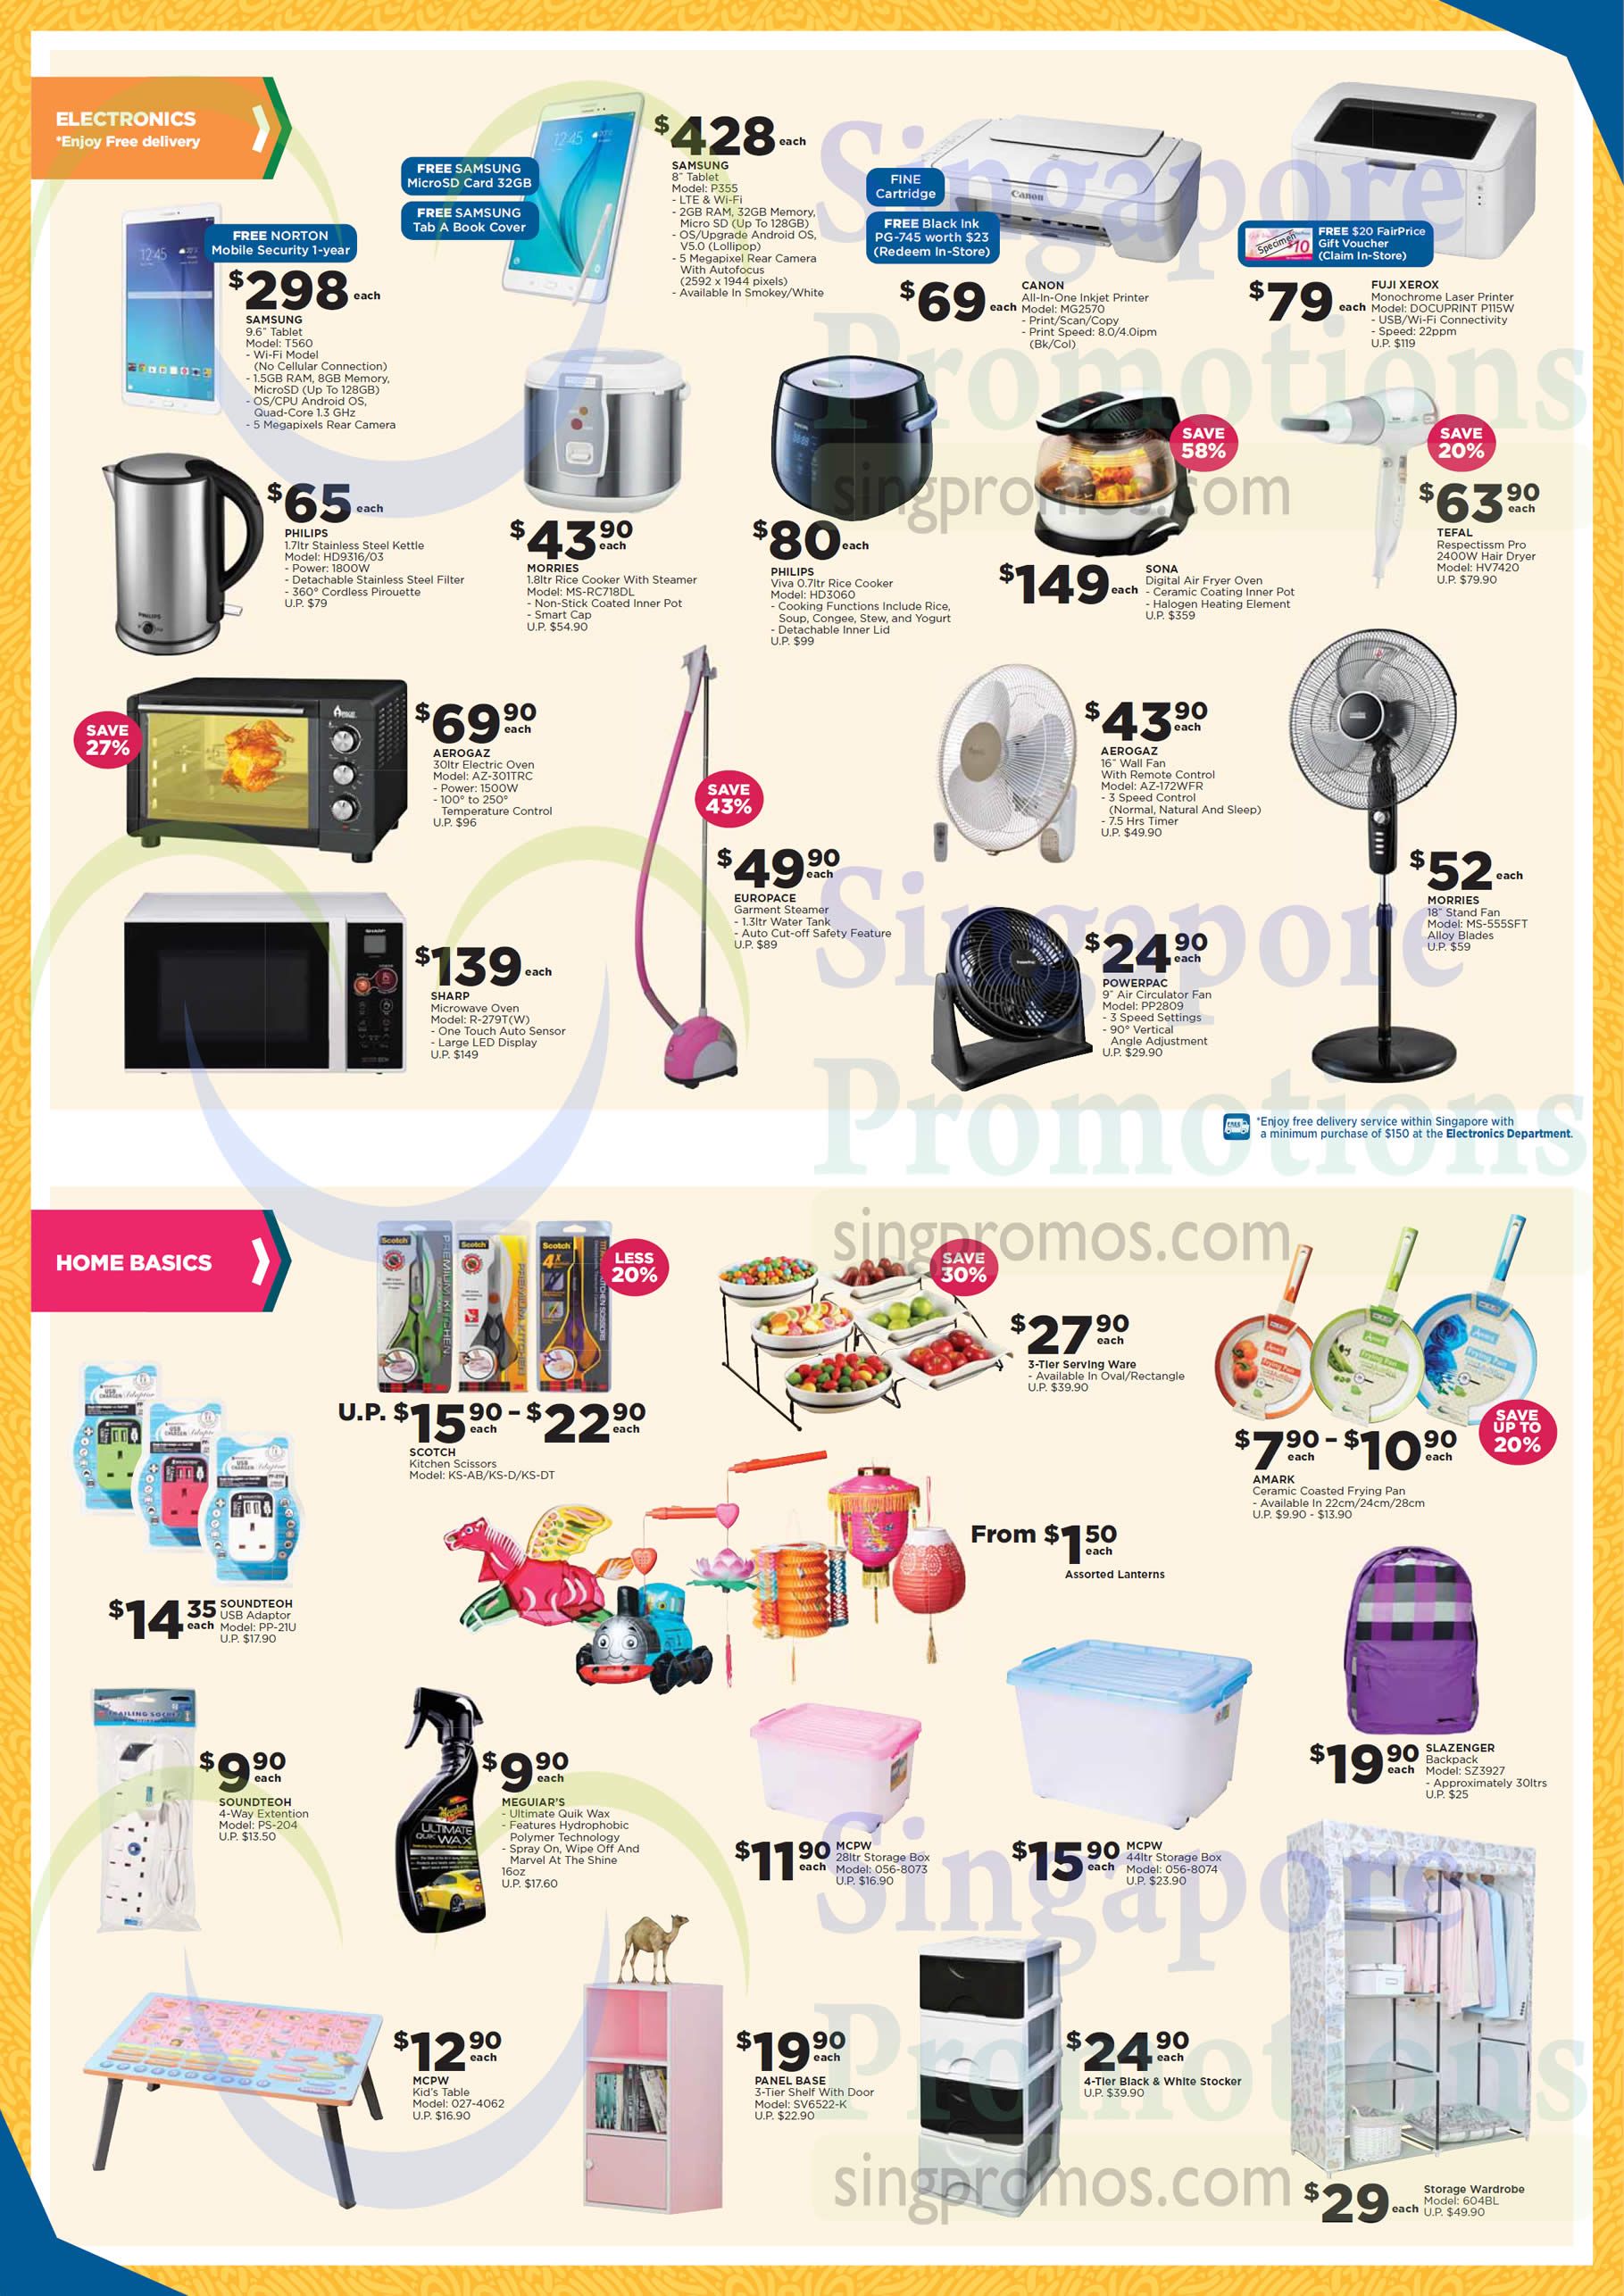 Electronics Home Basics Tablets Rice Cookers Ovens